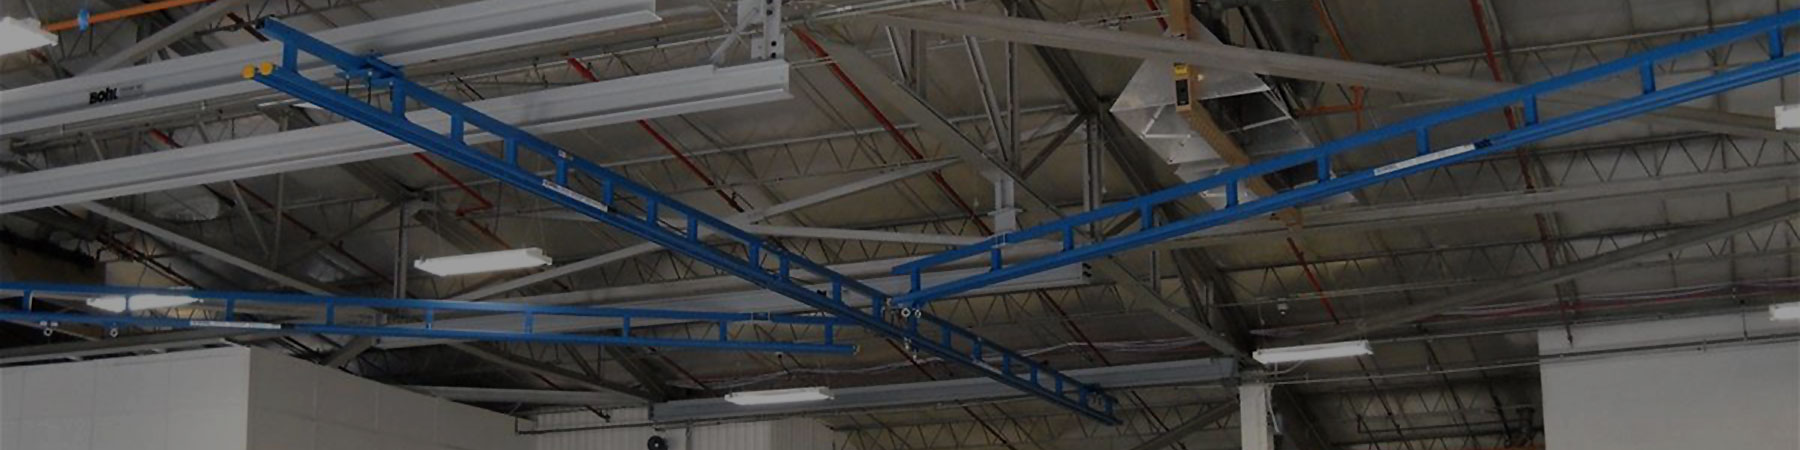 Ceiling Mounted Fall Protection Monorails